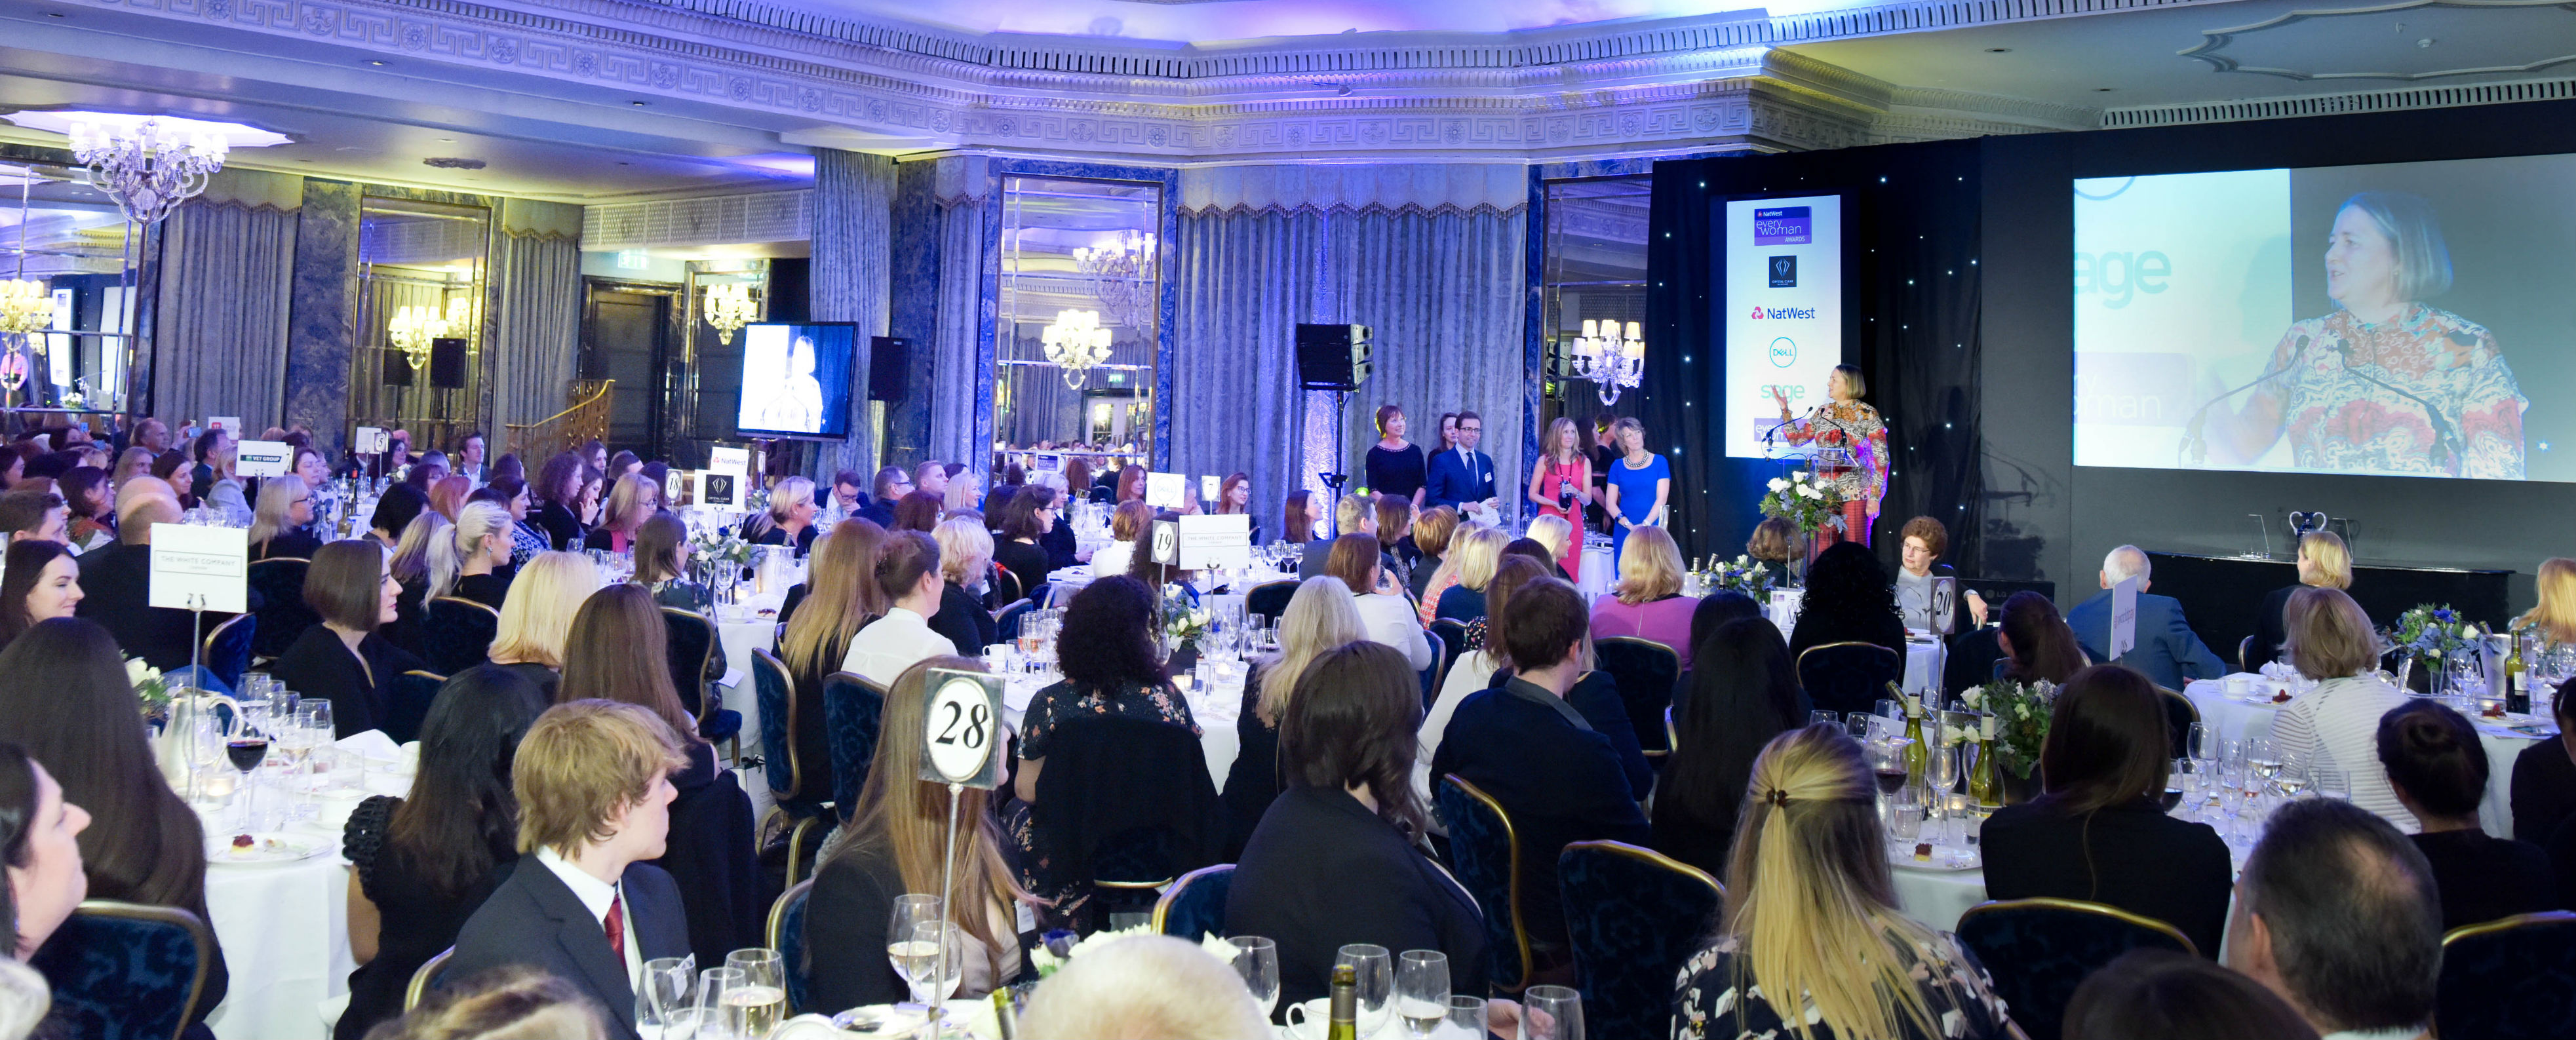 NatWest everywoman Awards winners announced